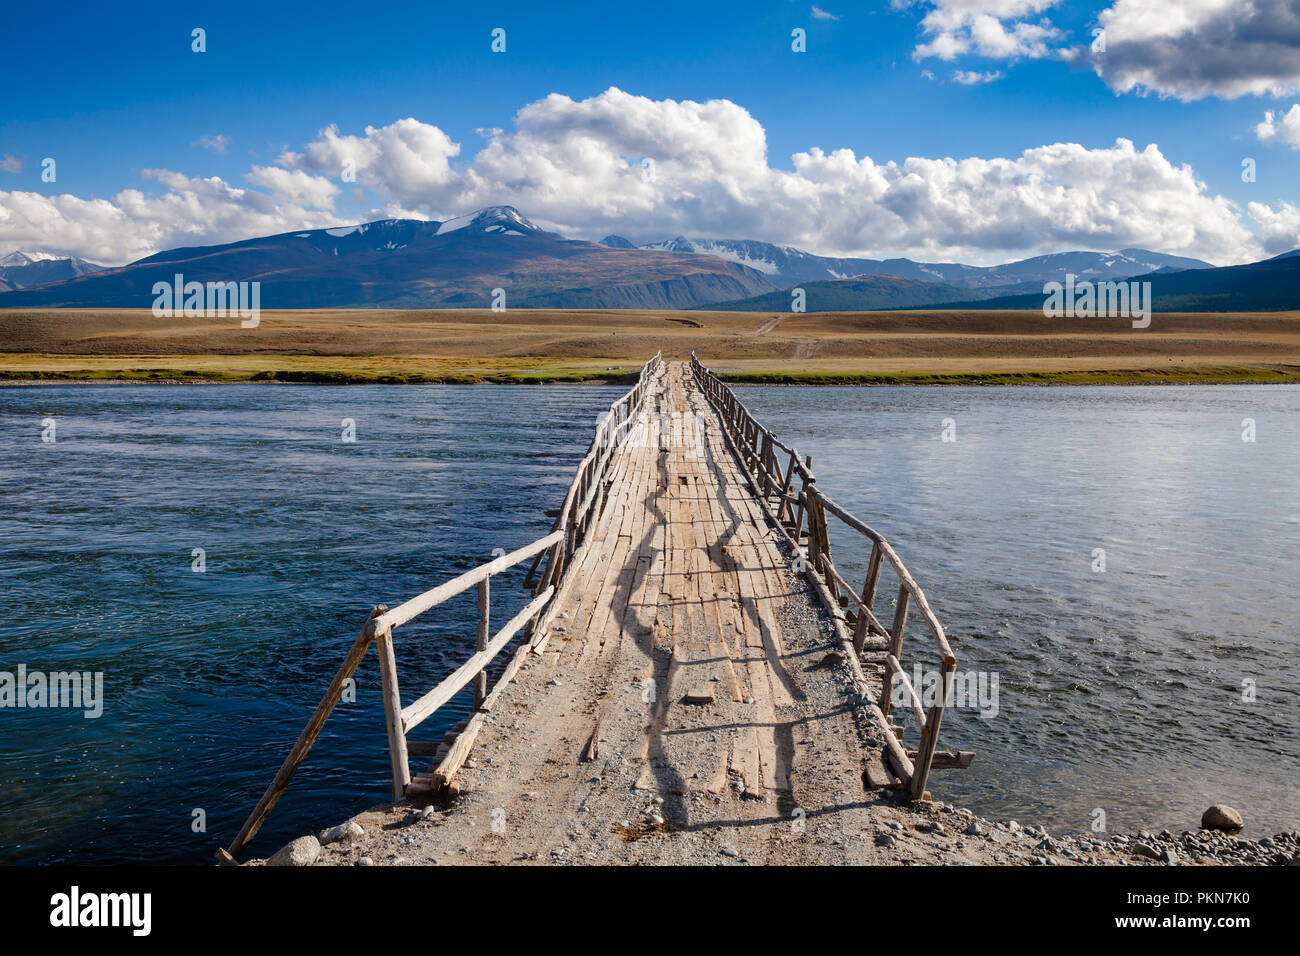 Shabby wooden bridge over a river with distant mountain range in background, Altai Mountains, Western Mongolia - Stock Image